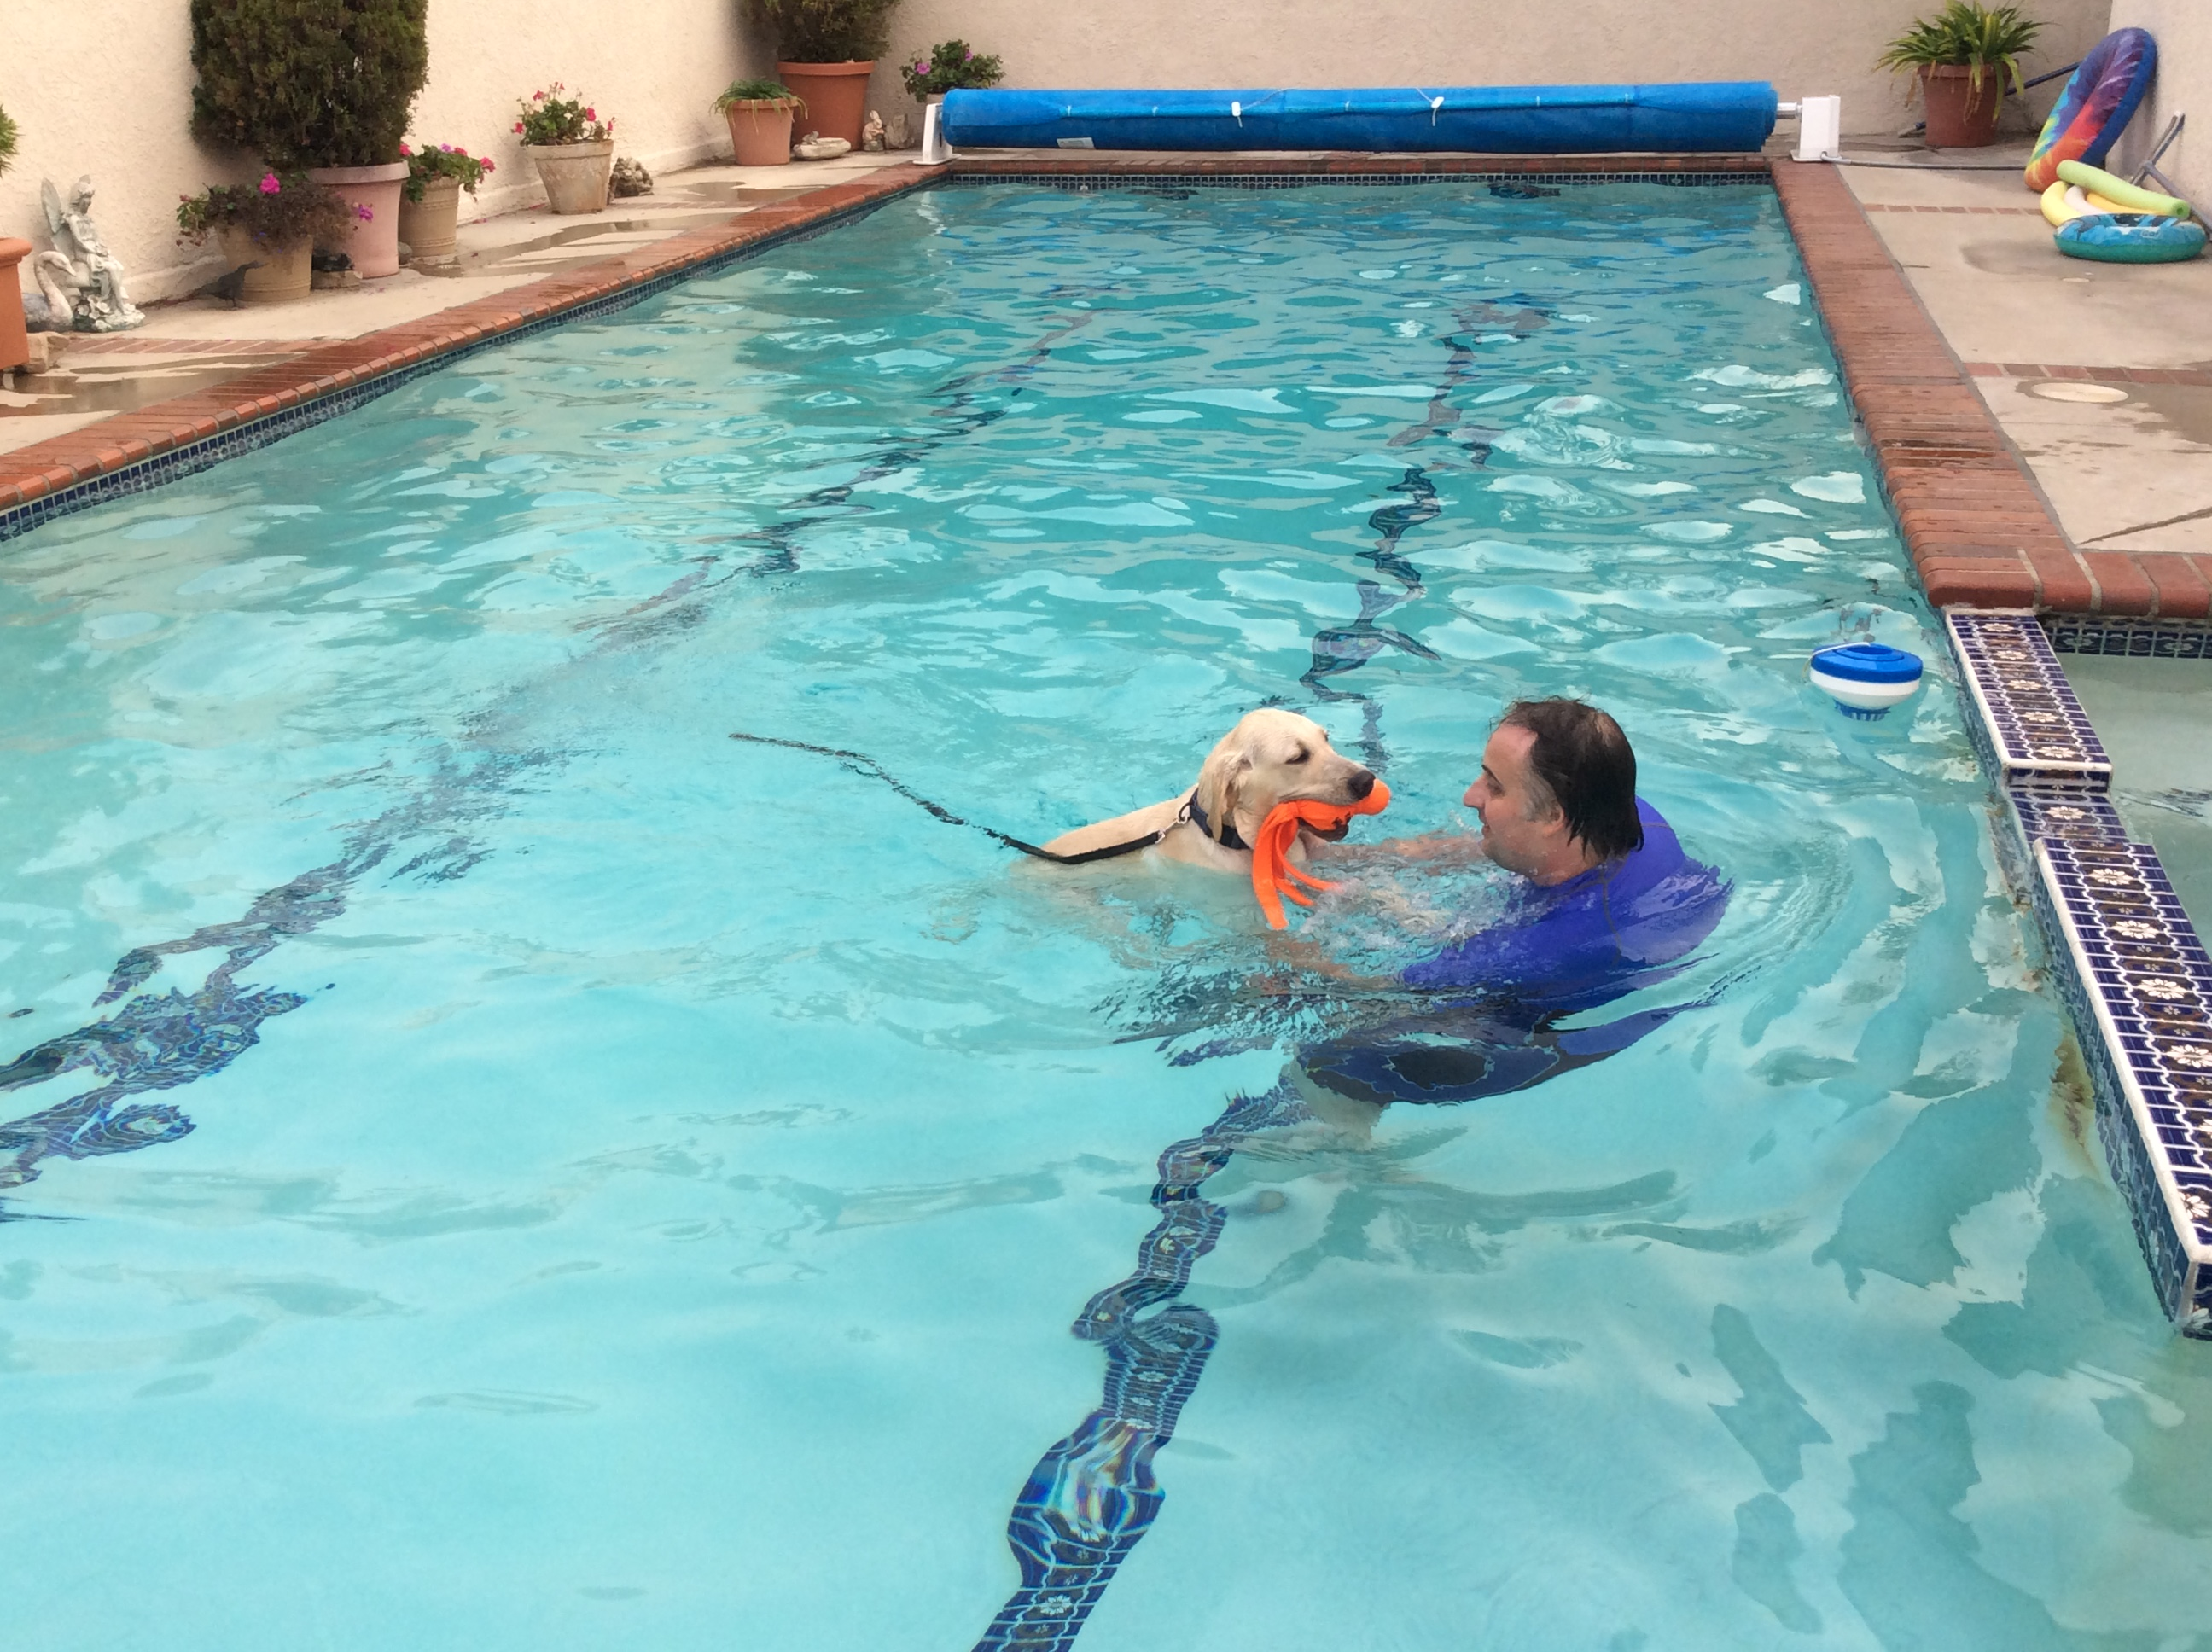 Tim with Milo in the pool